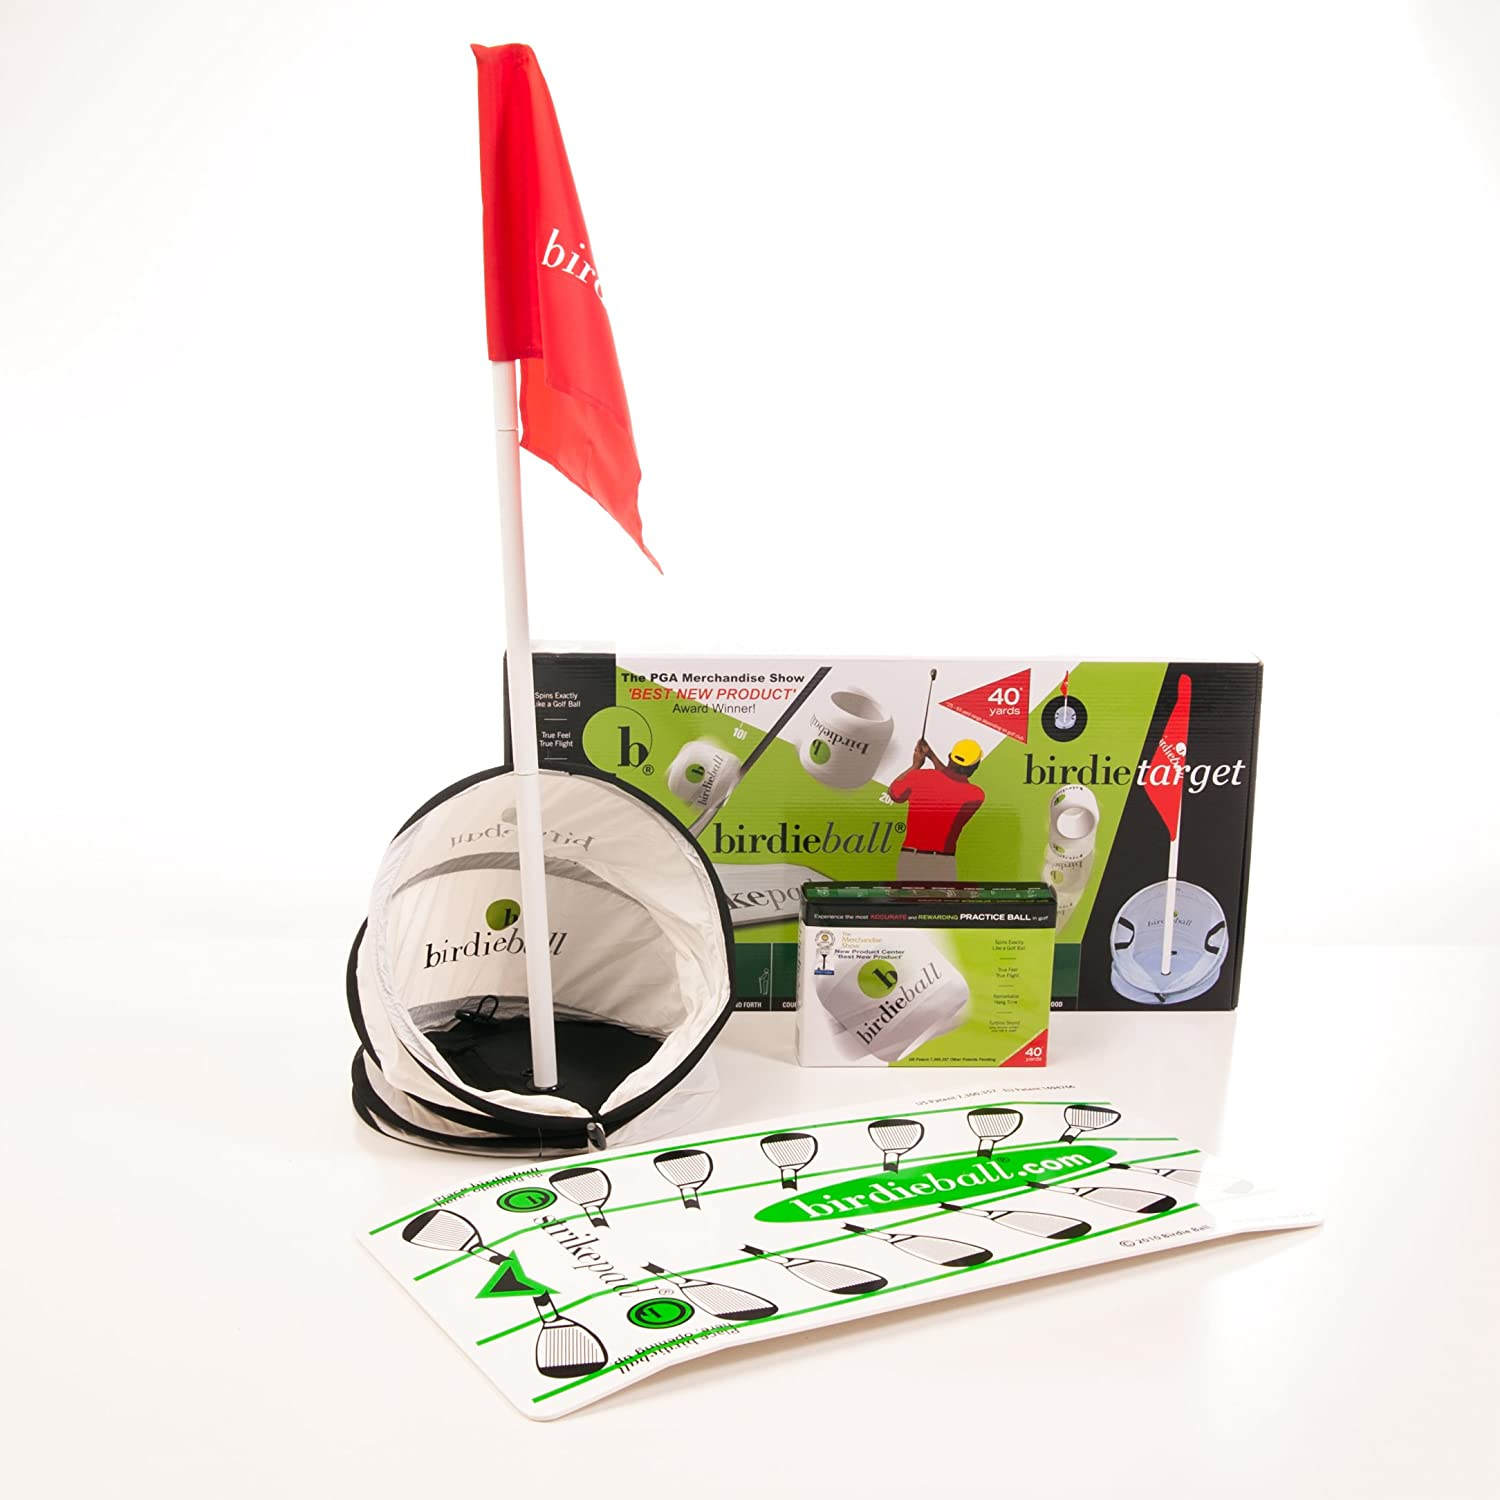 BirdieBall Set: Practice Golf Balls, Strike Pad and Birdie Target | 1 Dozen Full Swing Limited Flight Practice Balls, Training Strike Mat, and Practice Target